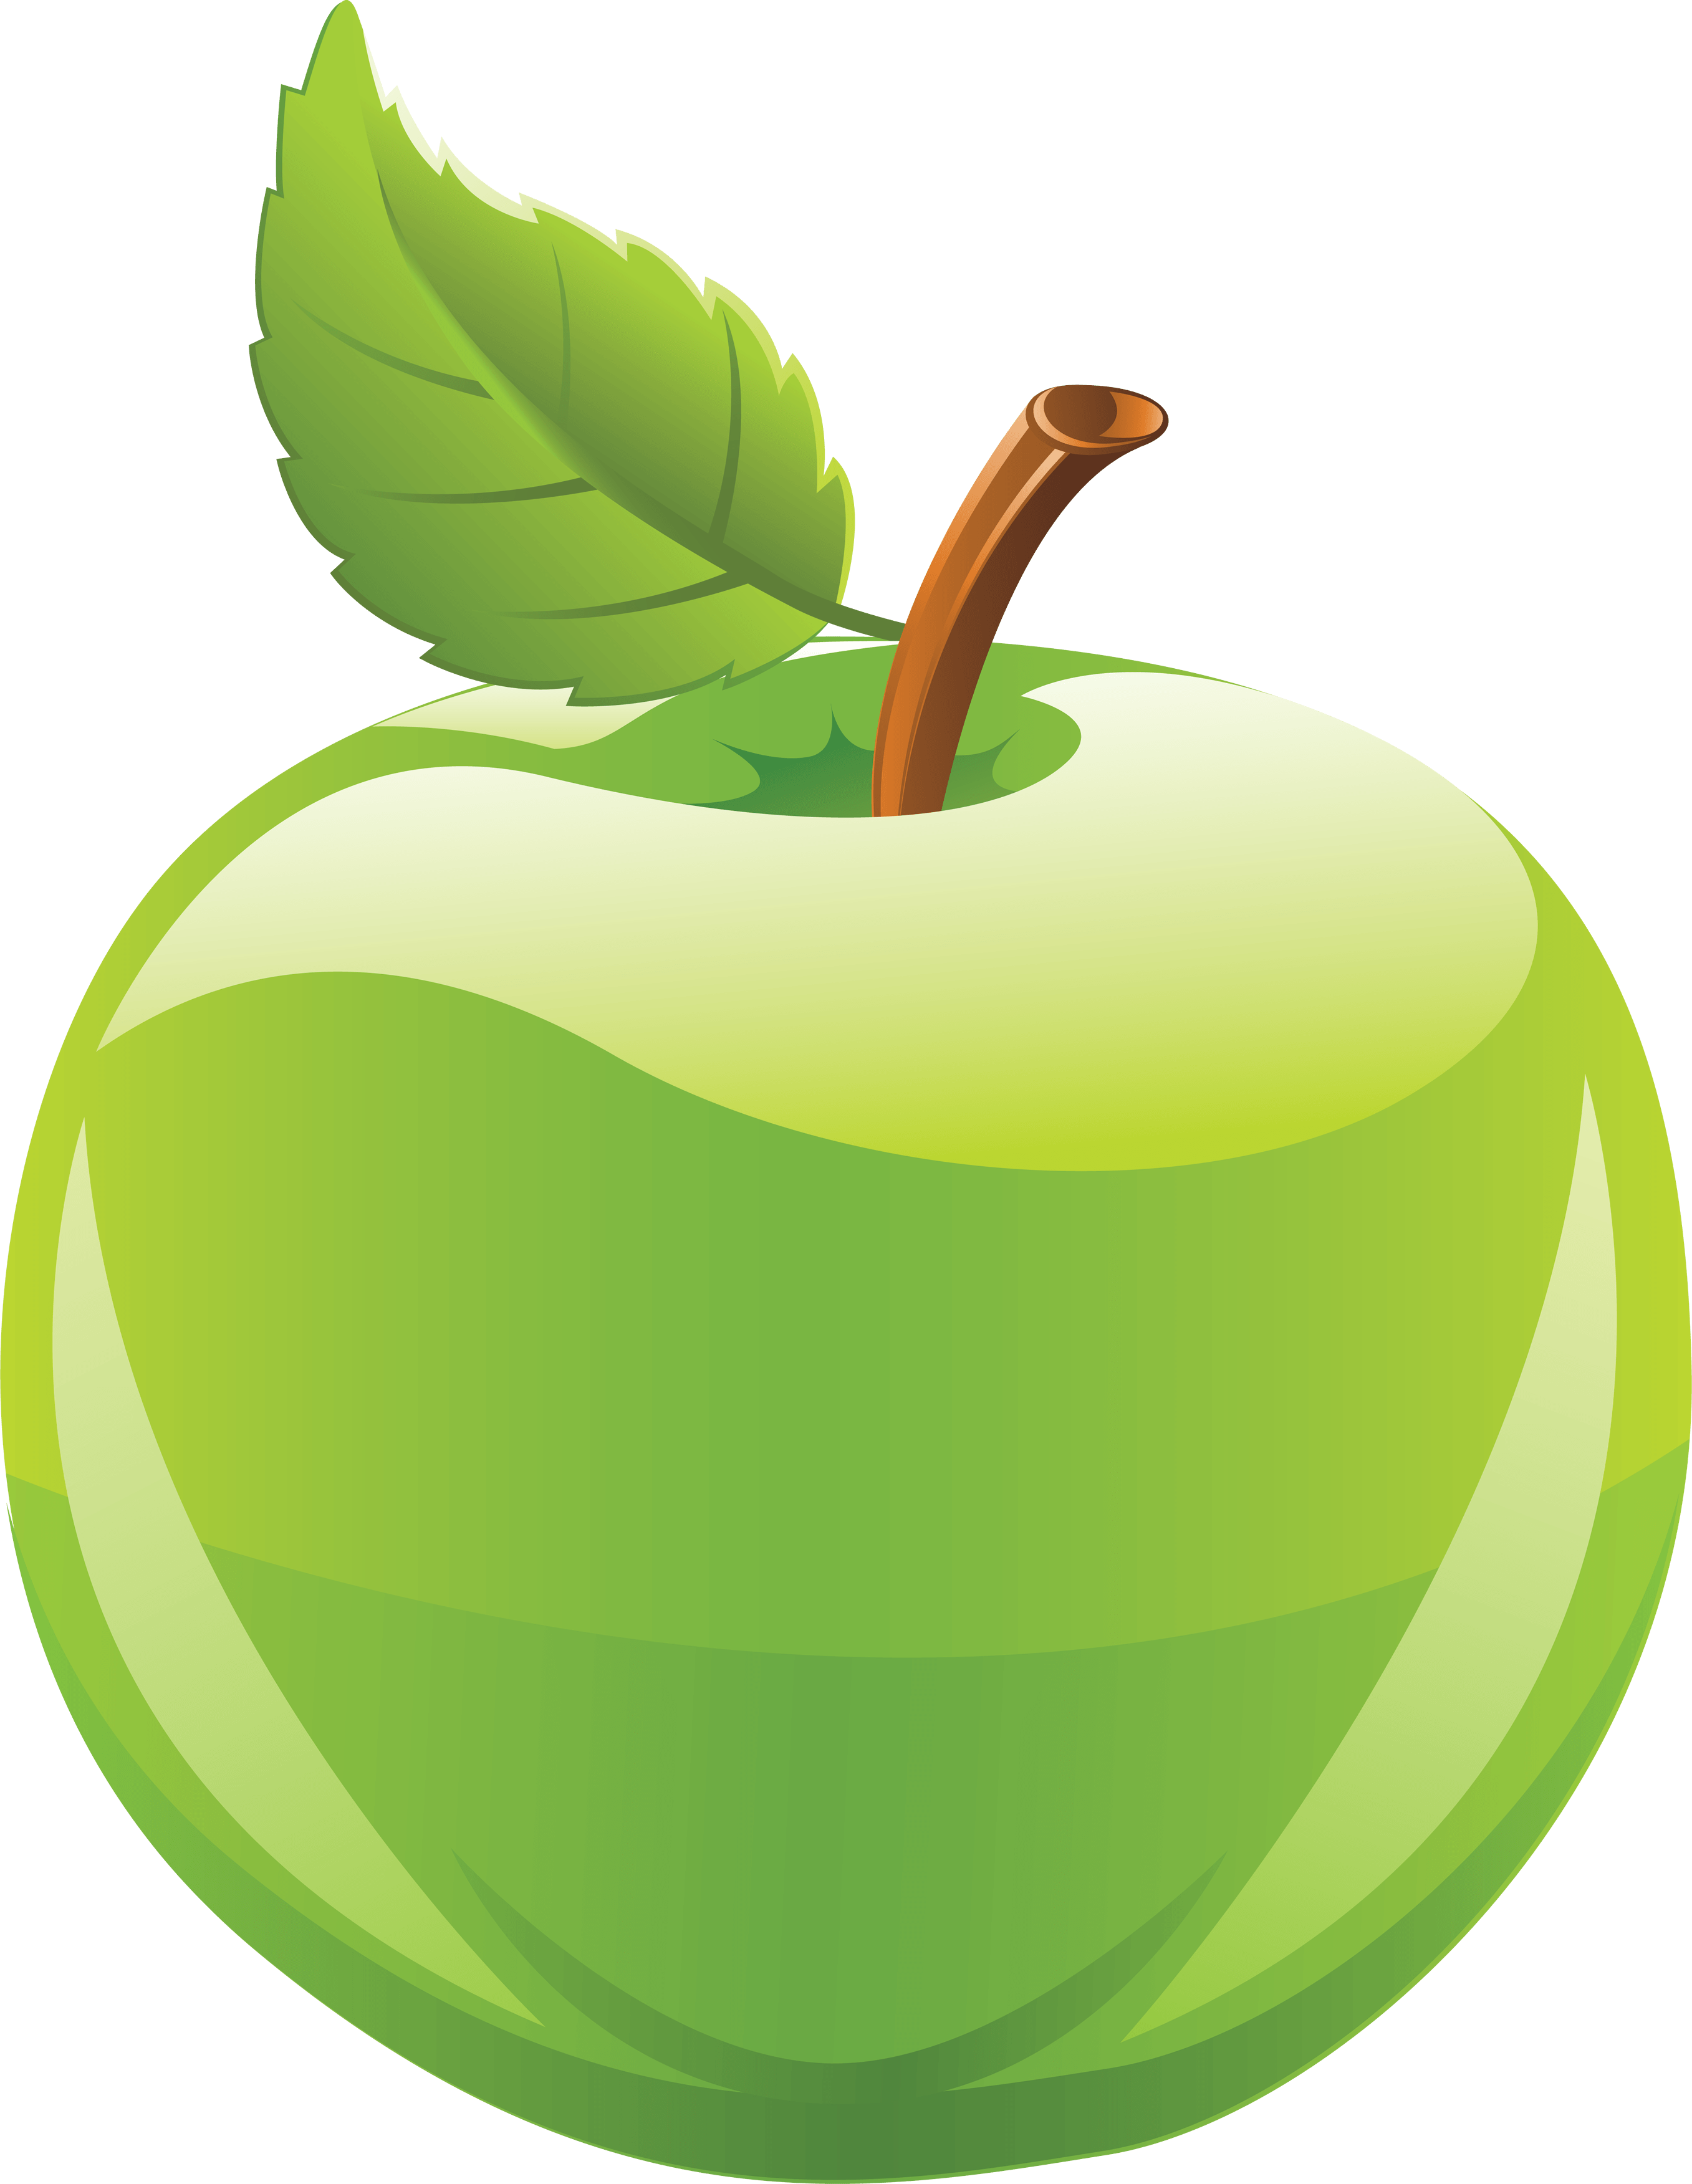 Man with apple clipart jpg free download 49 Green Apple Png Image jpg free download